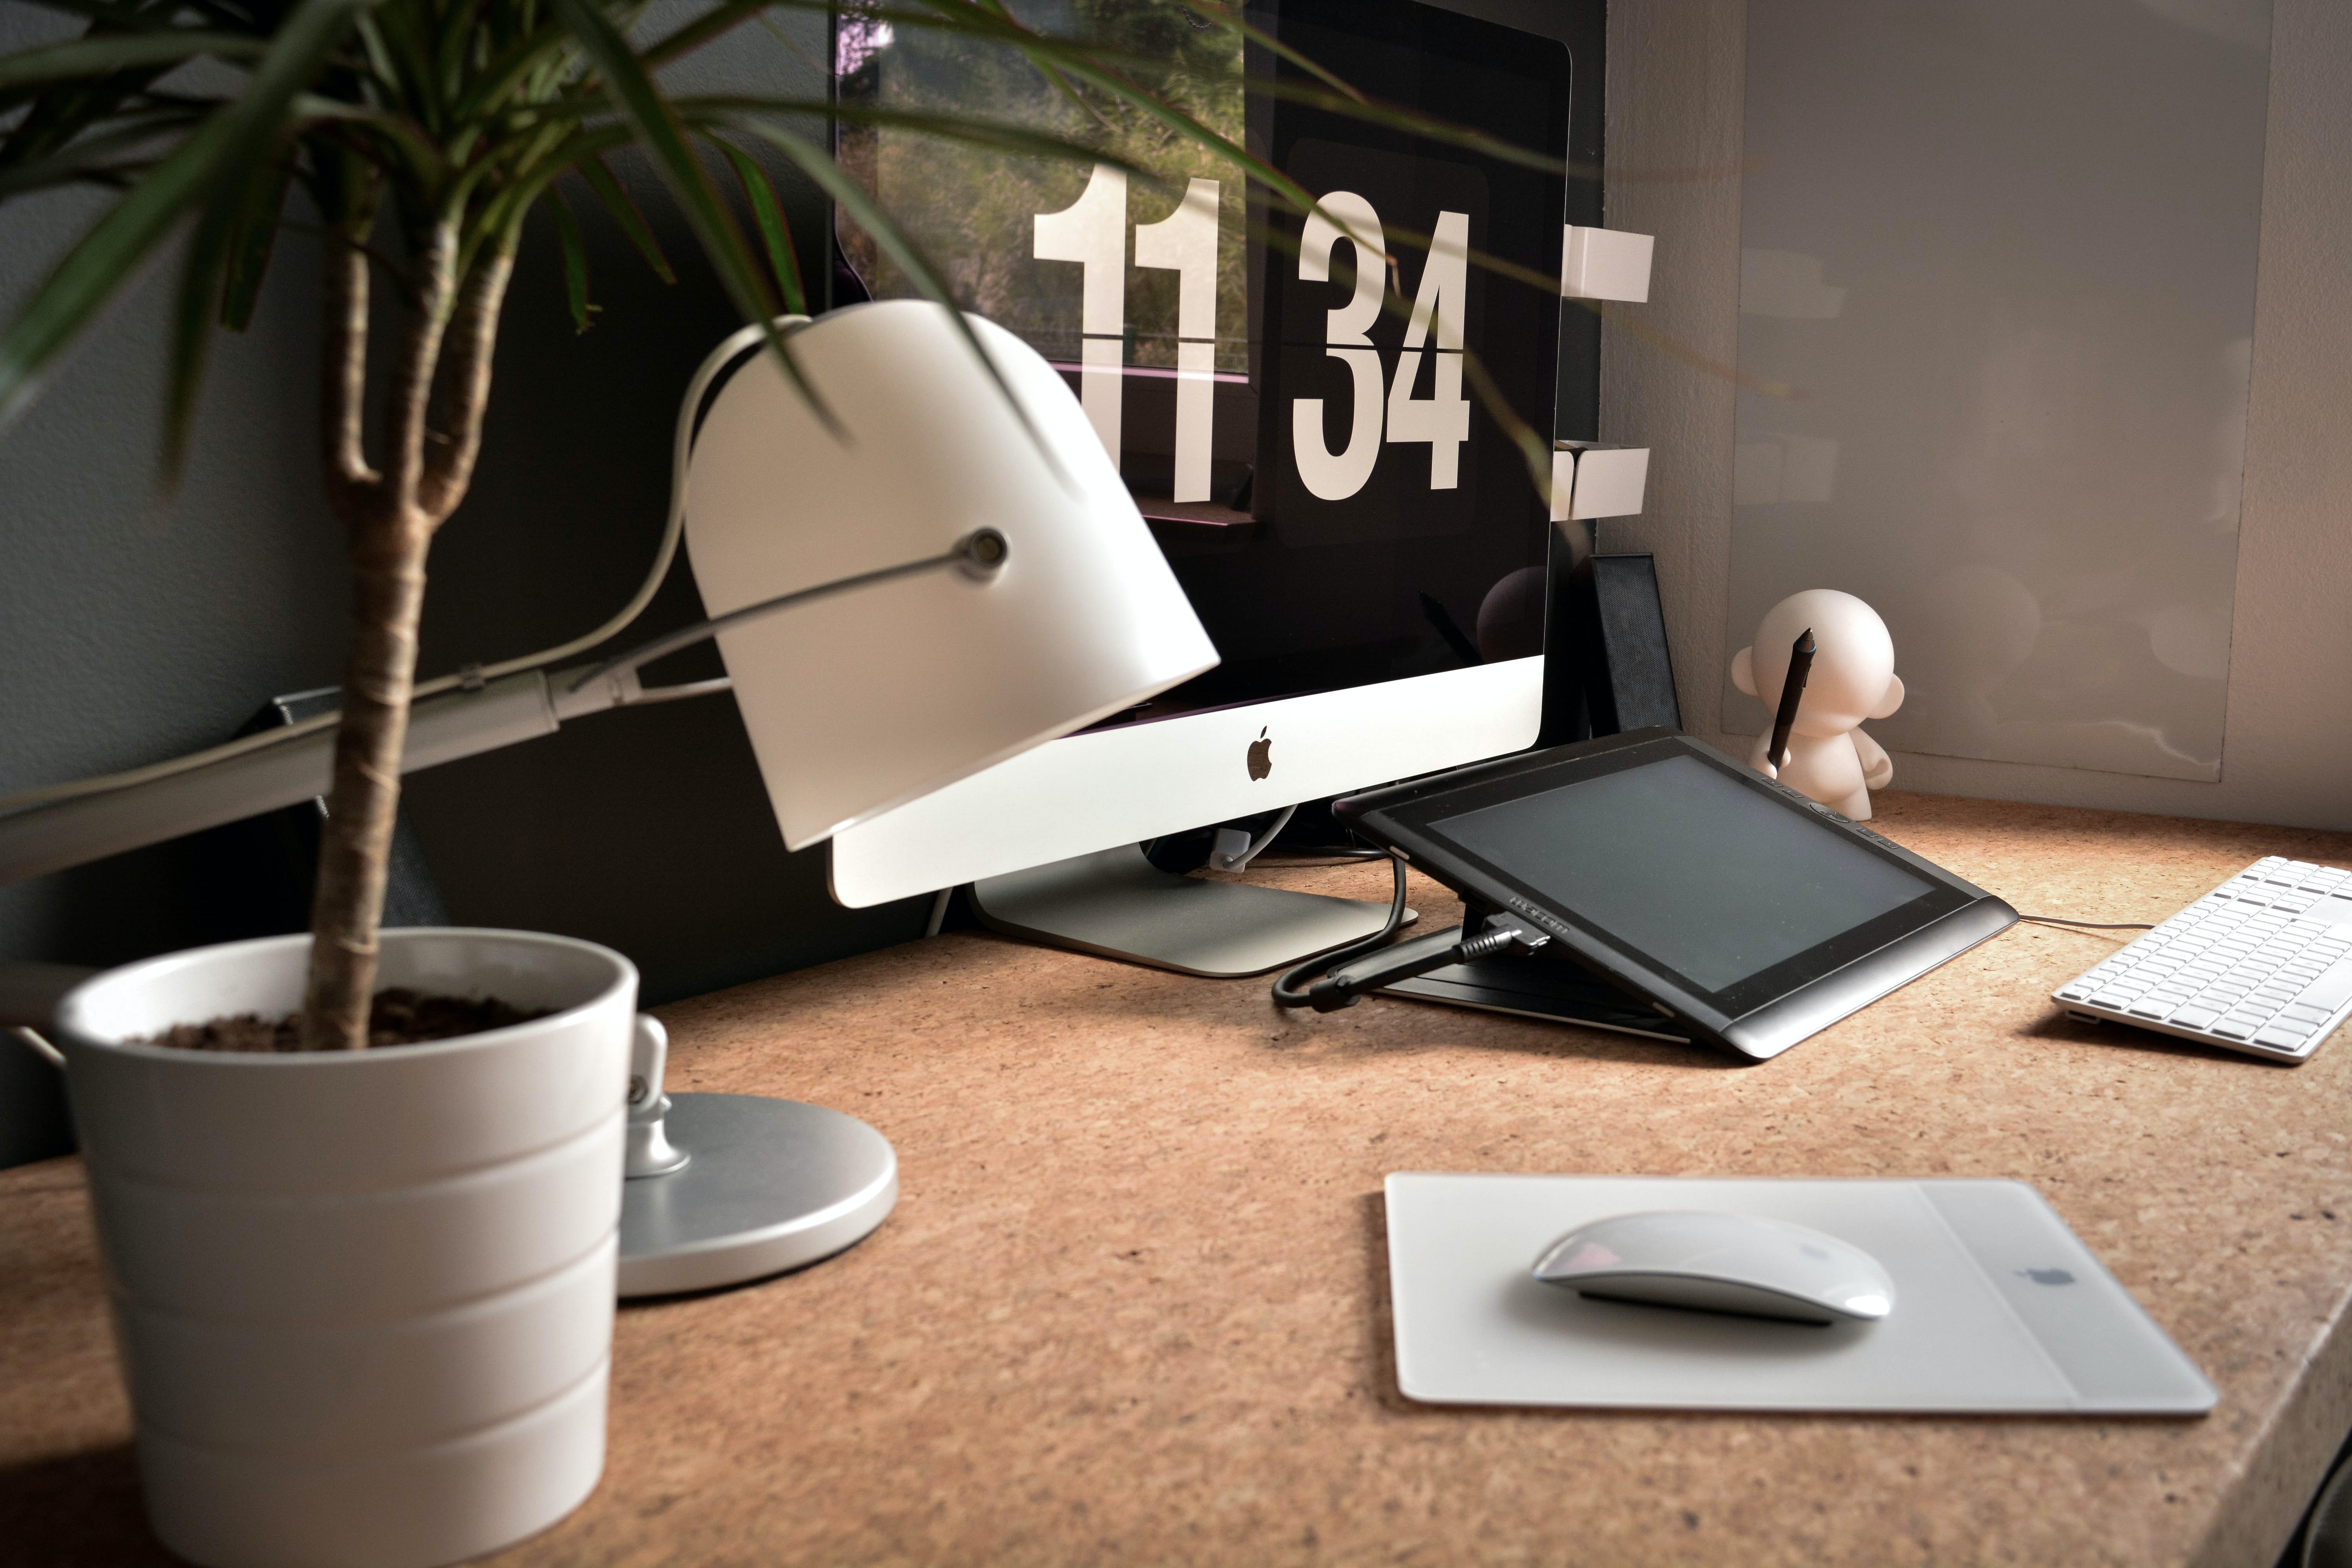 Office space with a Mac computer, lamp, tablet, mousepad, keyboard, and plant